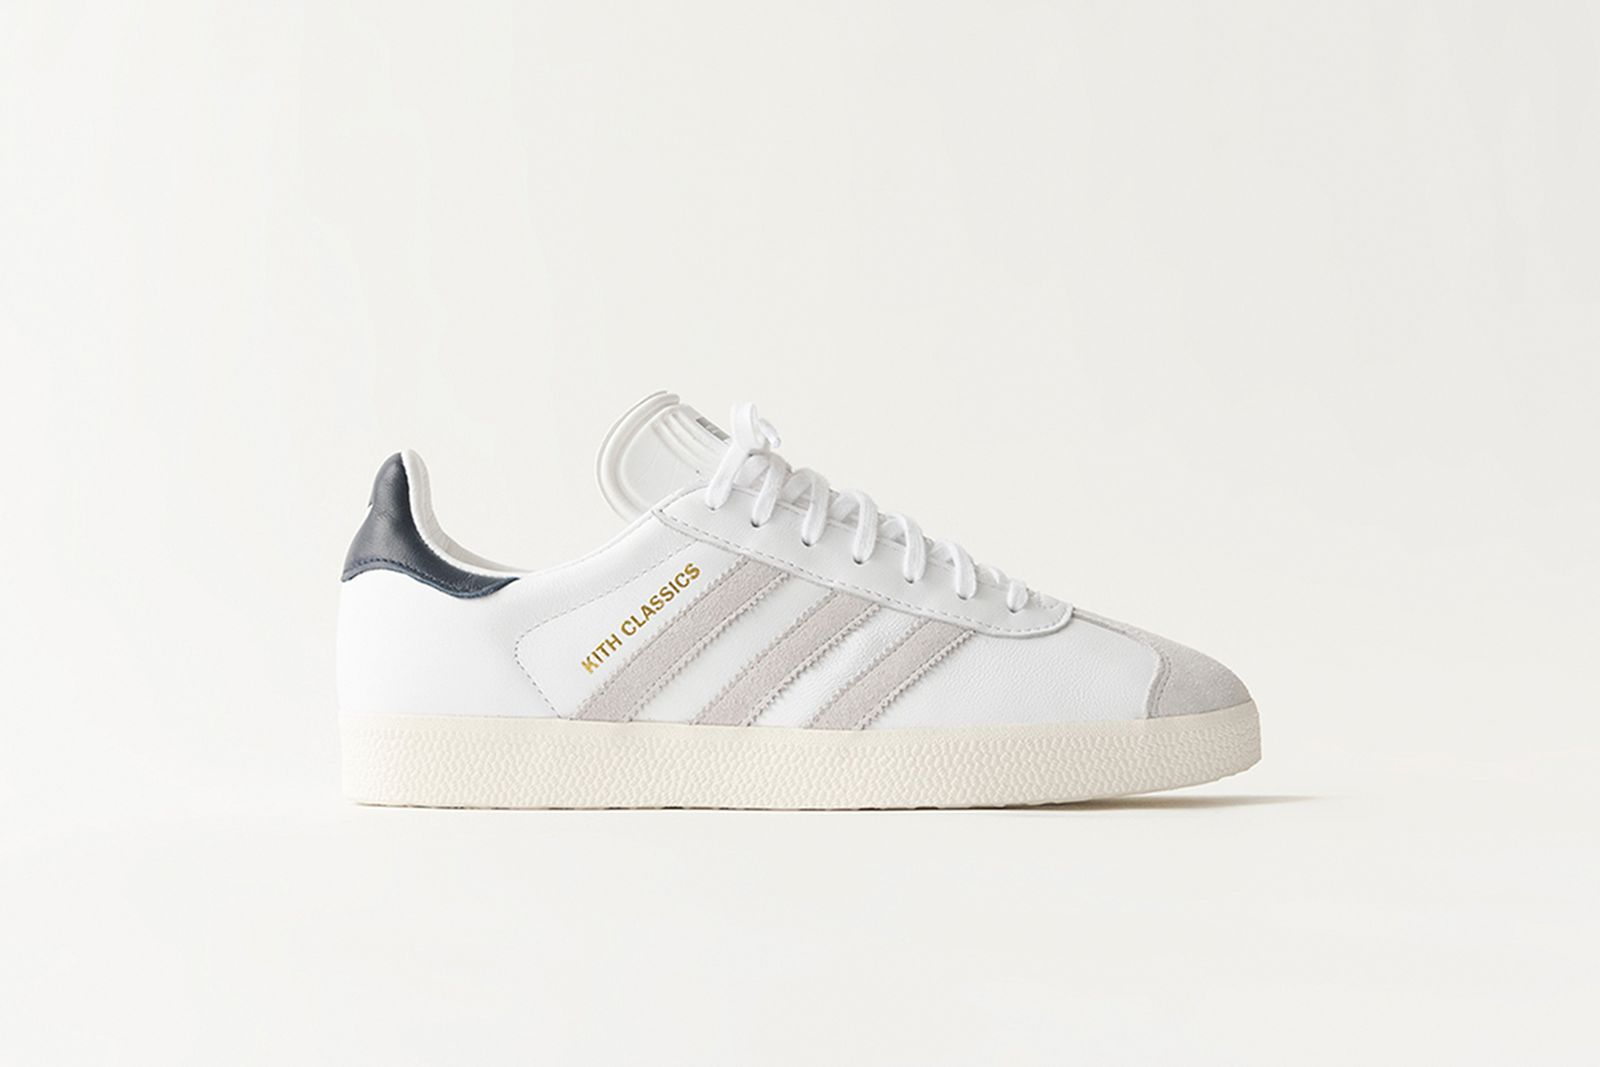 kith-adidas-summer-2021-release-info-11